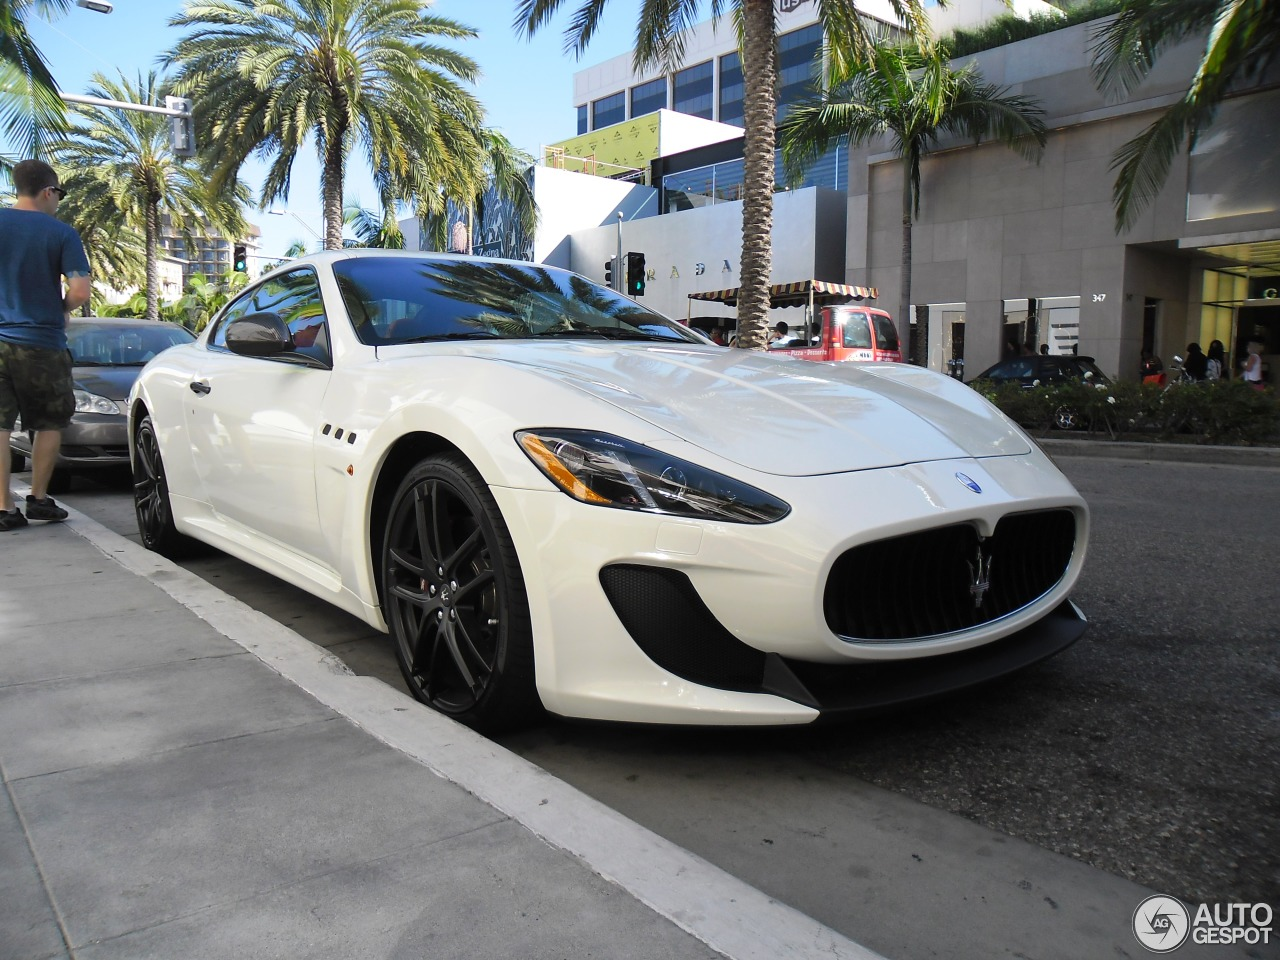 maserati granturismo mc stradale 23 june 2013 autogespot. Black Bedroom Furniture Sets. Home Design Ideas